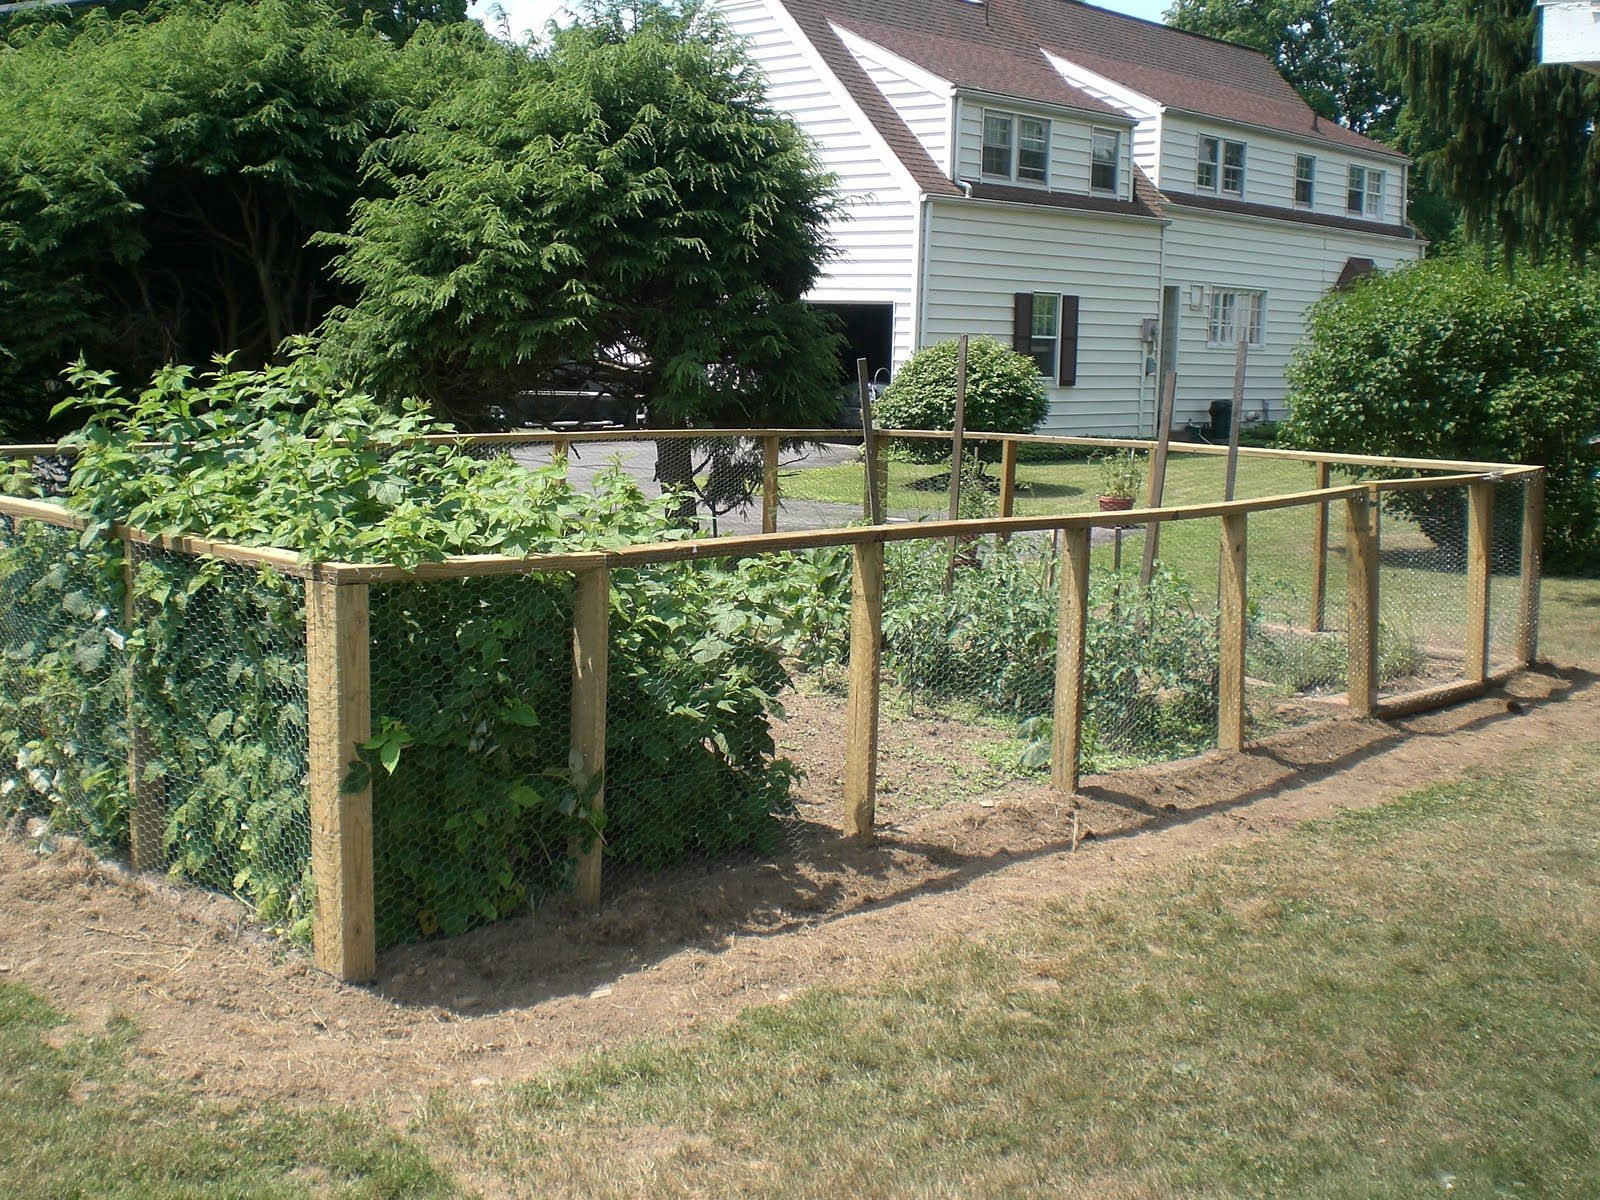 Veggie garden fence around chicken coop to keep dogs out